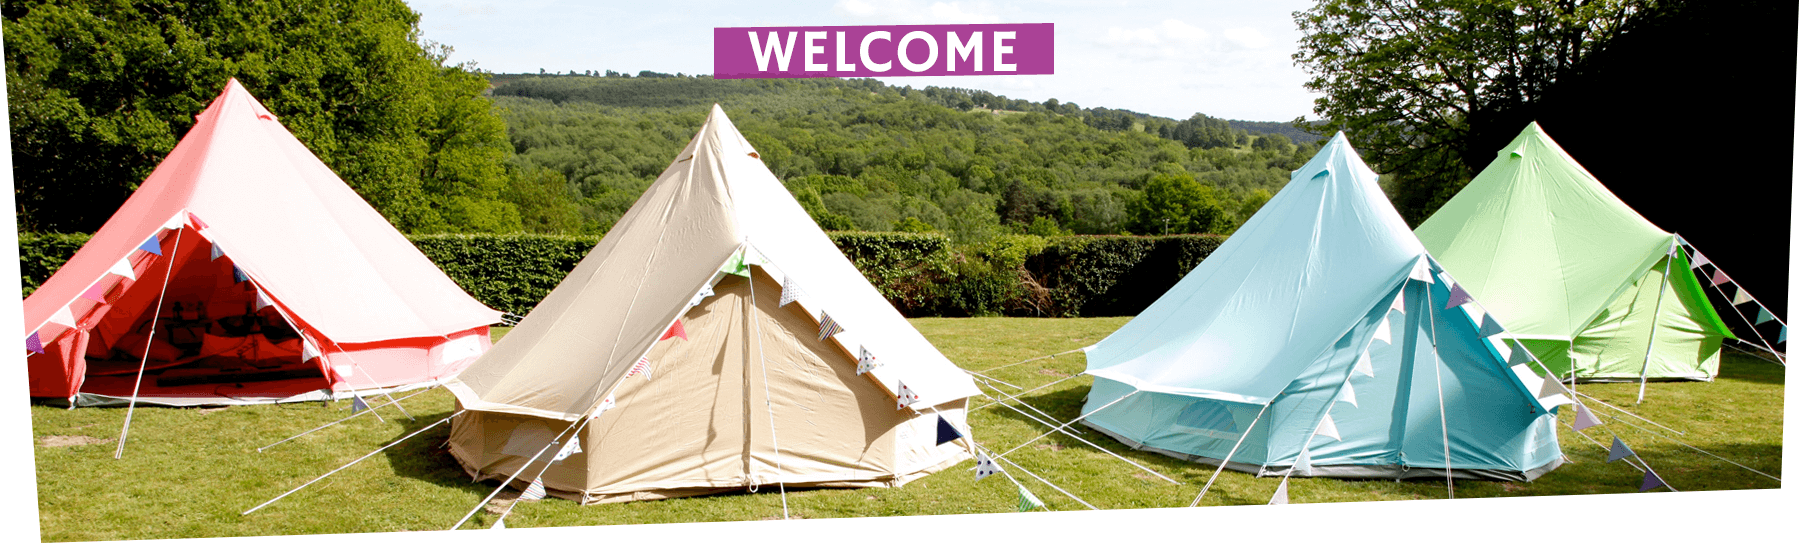 Welcome to Boutique Camping